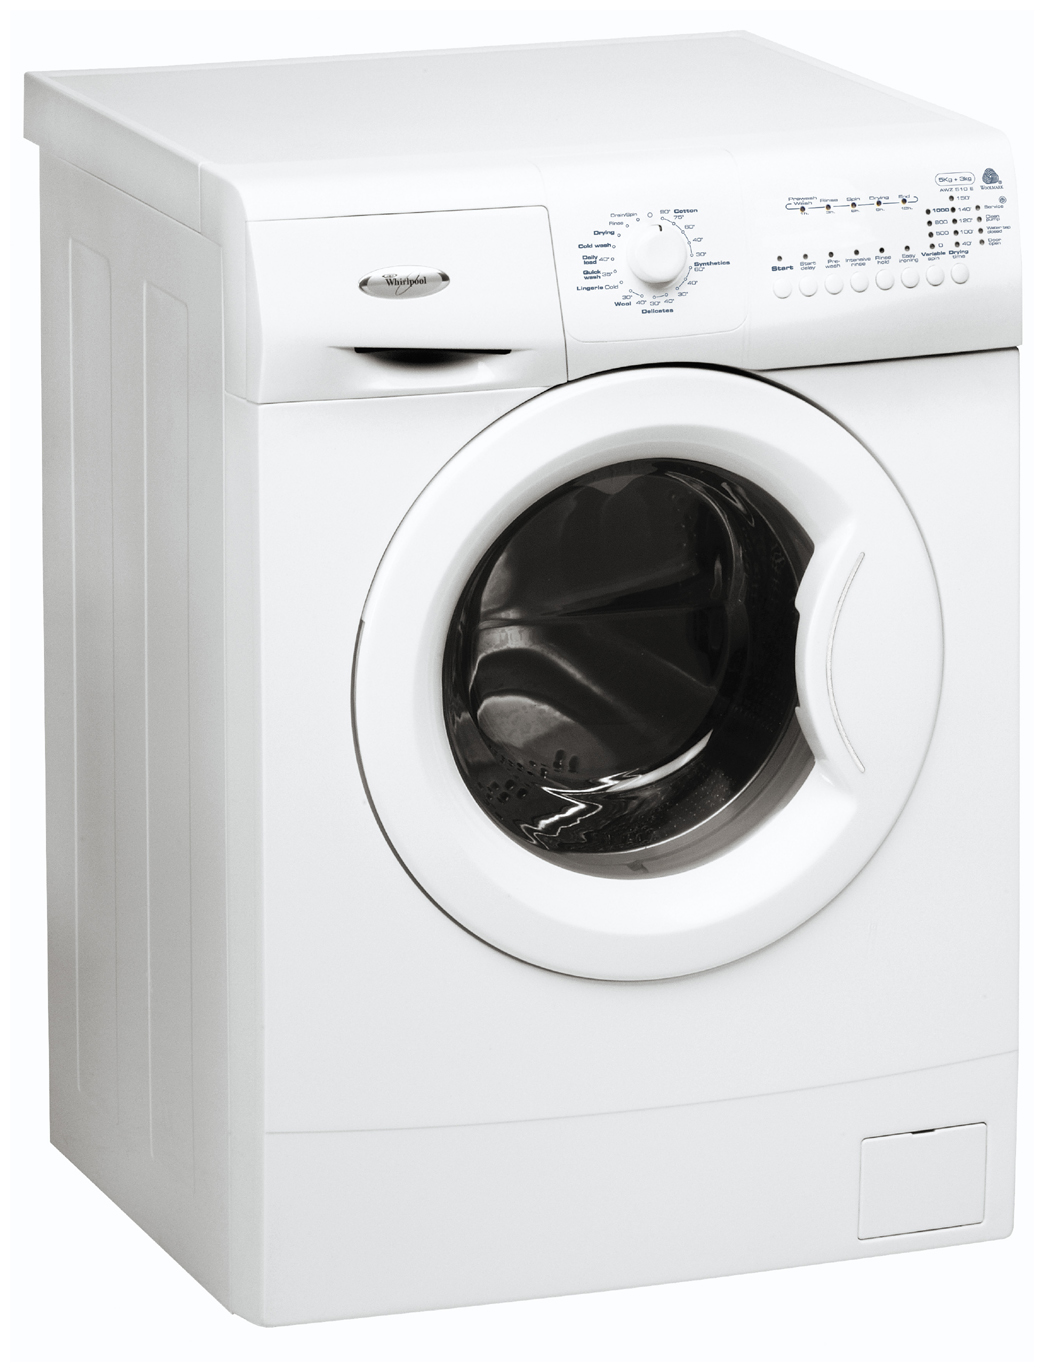 Older Whirlpool Duet Washer Capacity Pictures To Pin On